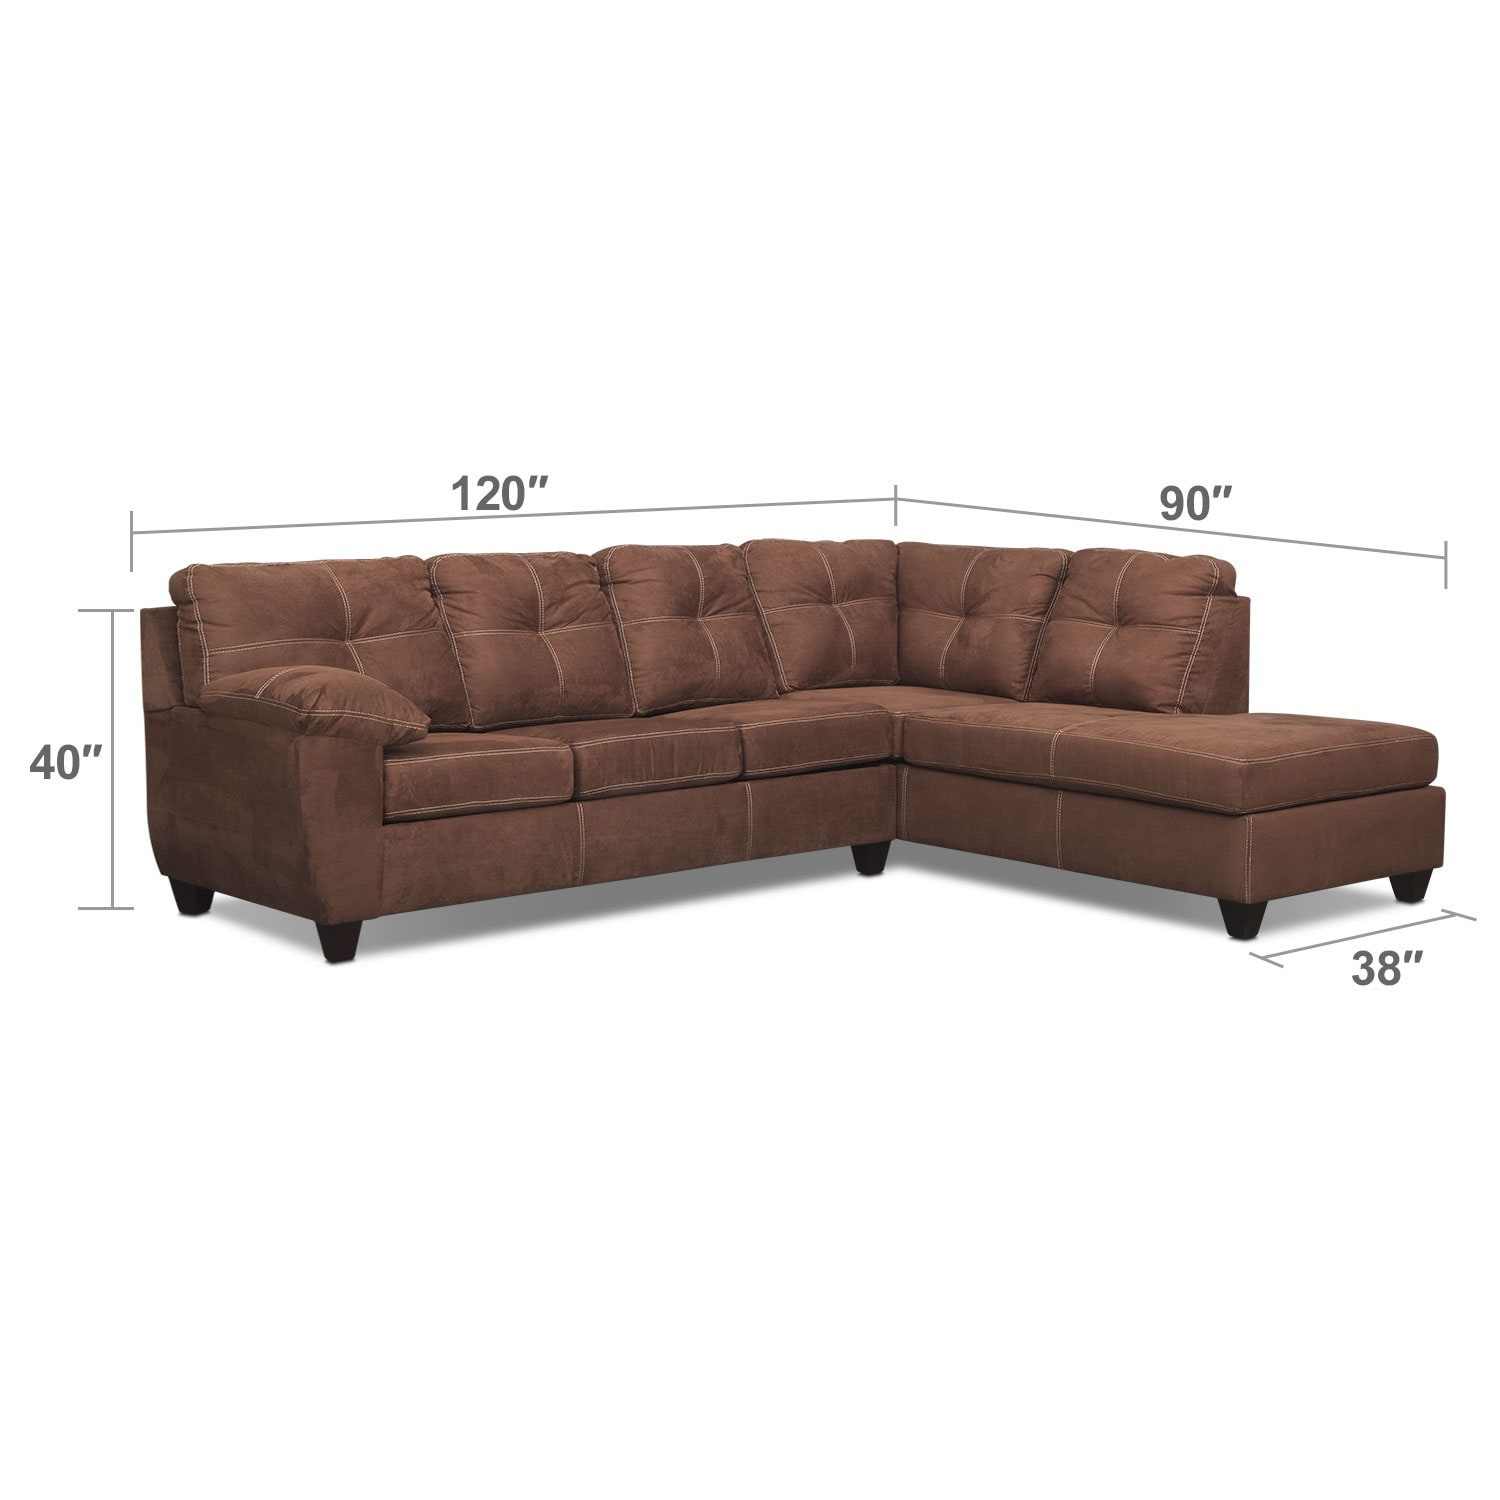 Living Room Furniture - Rialto Coffee 2 Pc. Sectional with Right-Facing Chaise